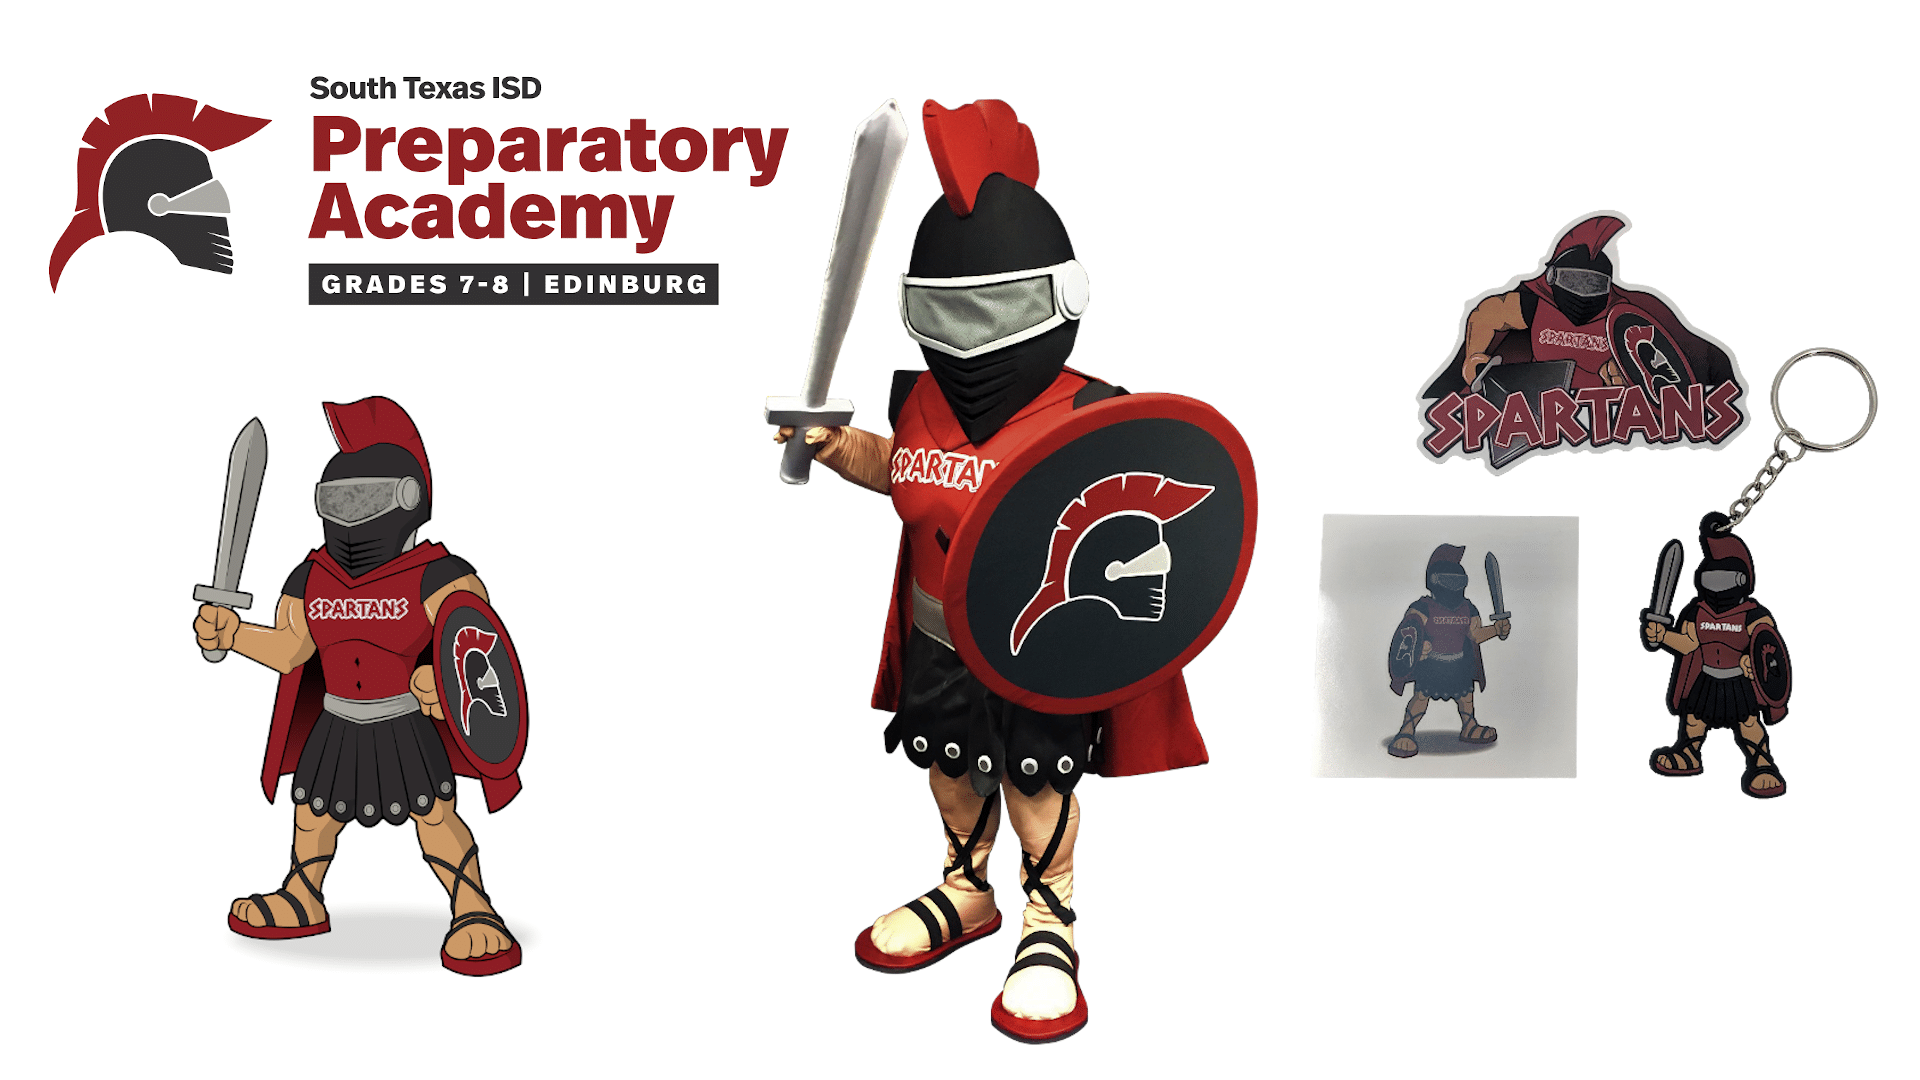 South Texas Prepartory Spartan - Merchandise